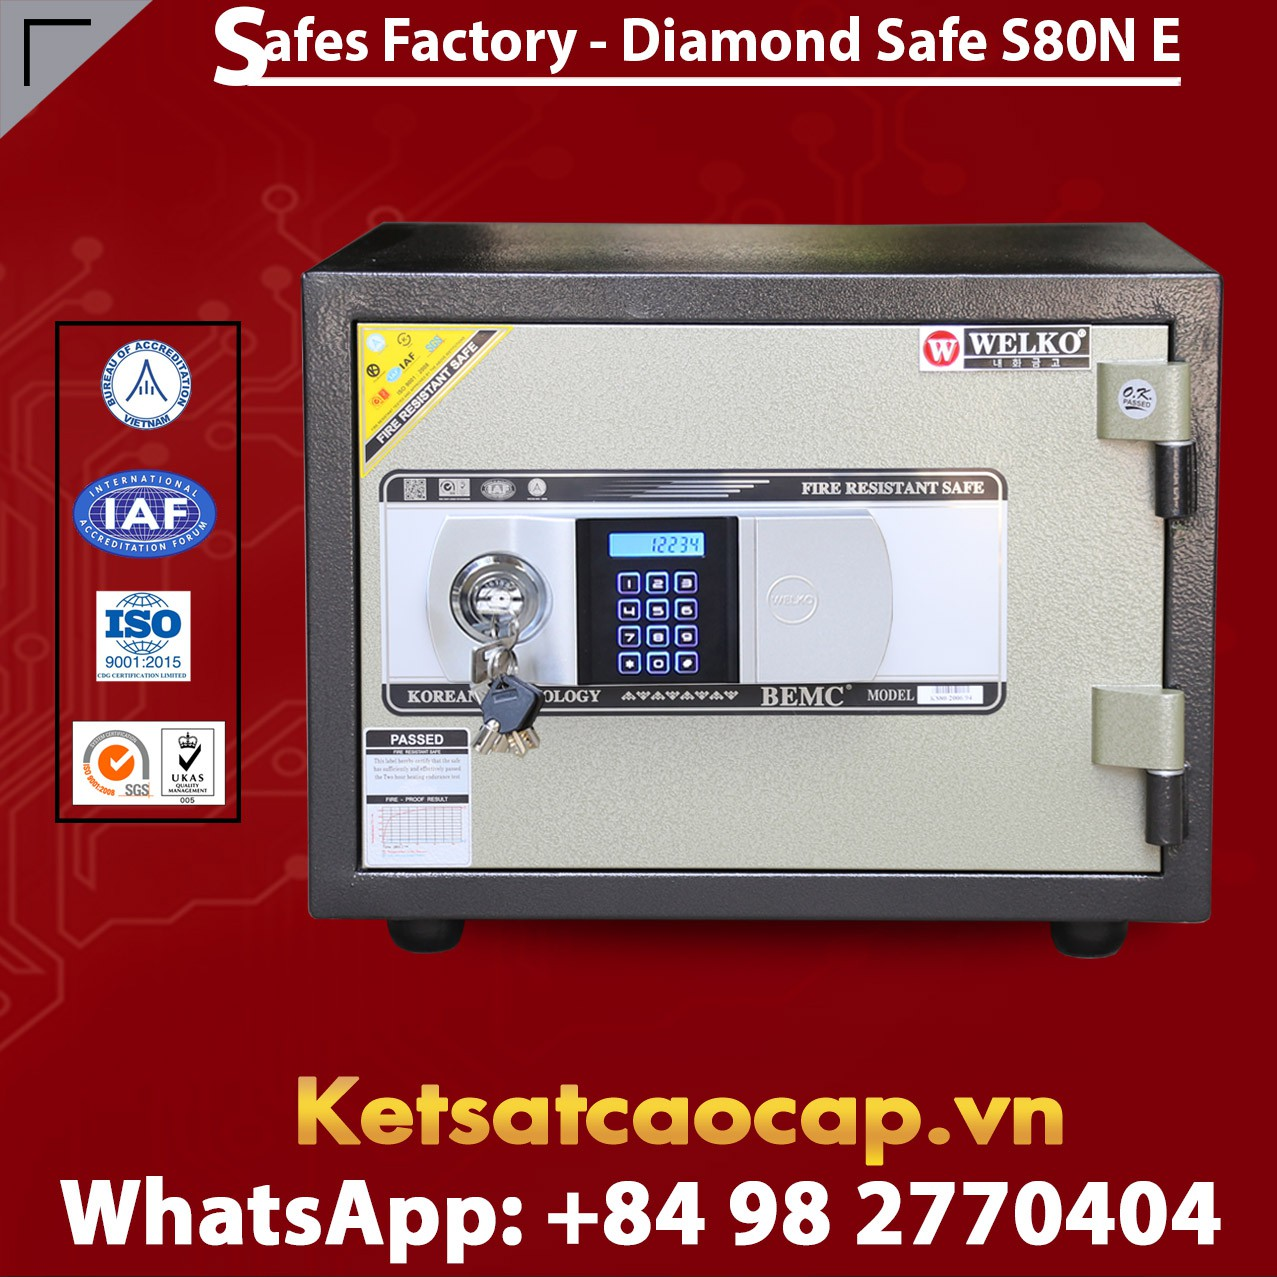 Home Safe Welko S80N GOLD E